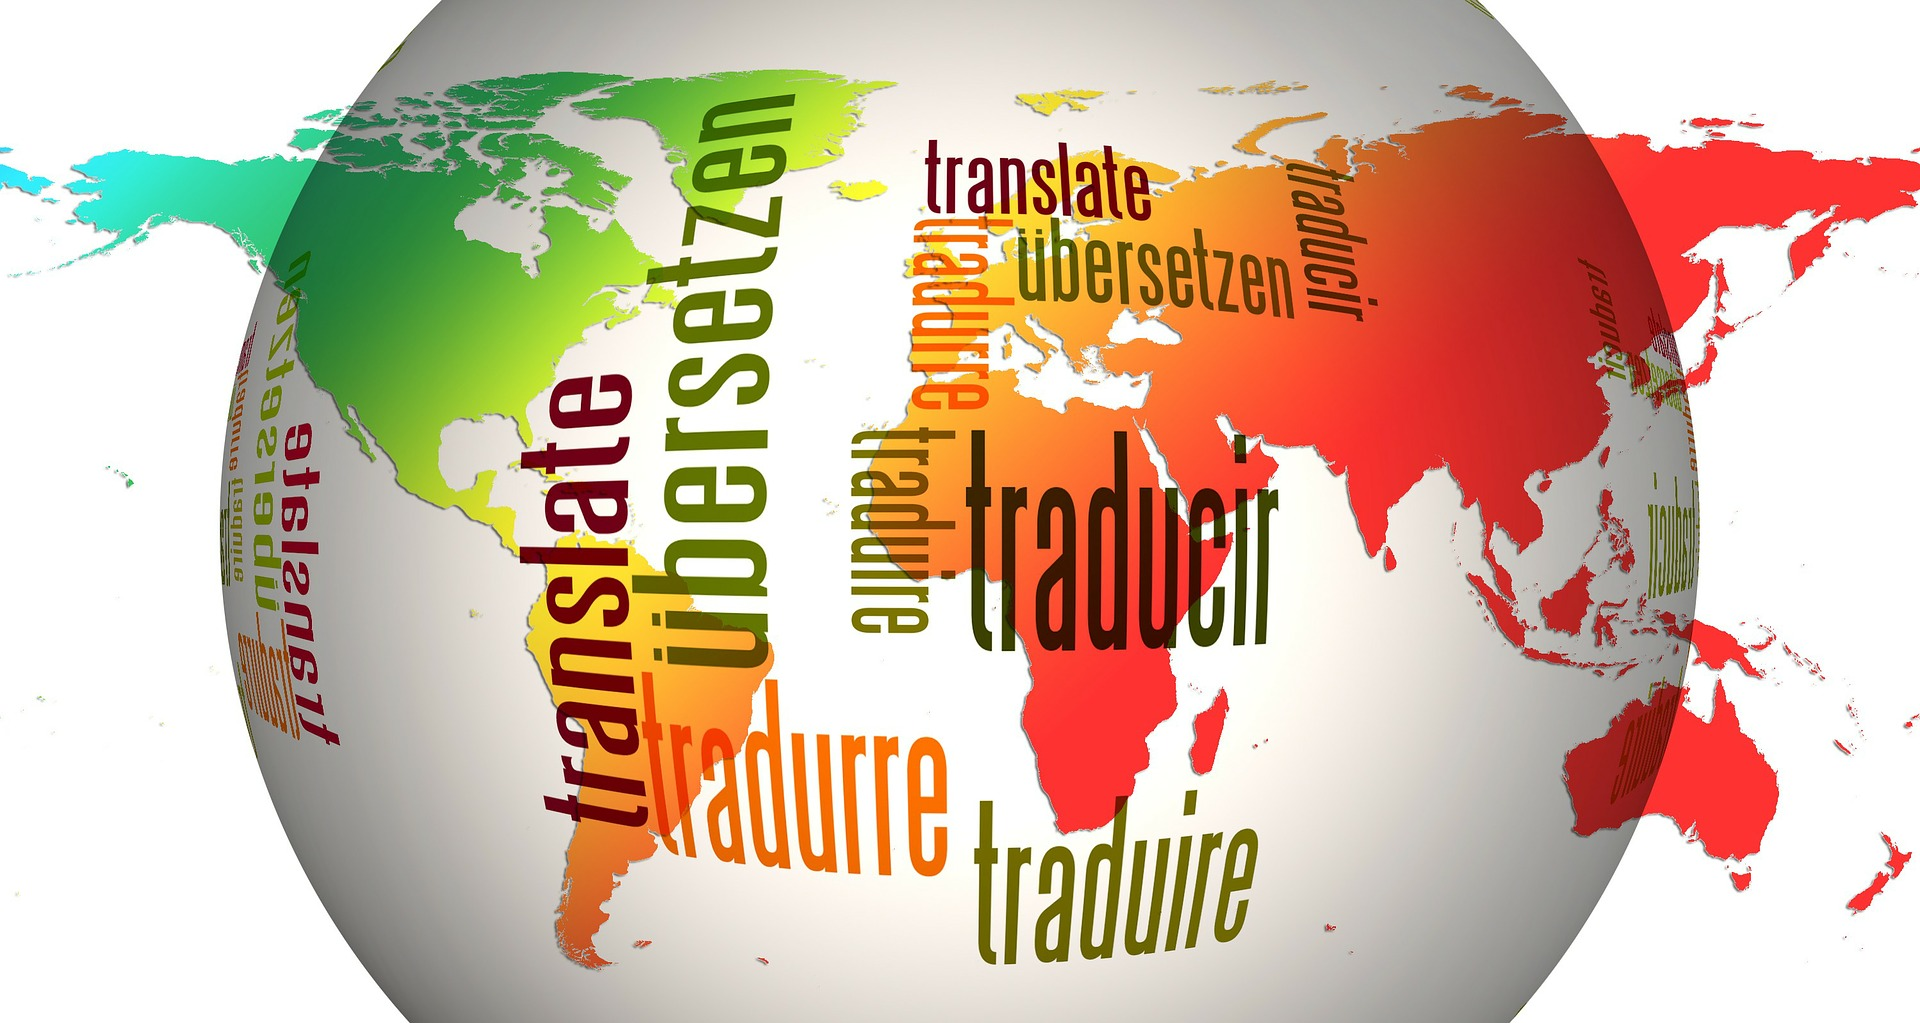 Langauge Service, Corporate Spanish, Translation Services